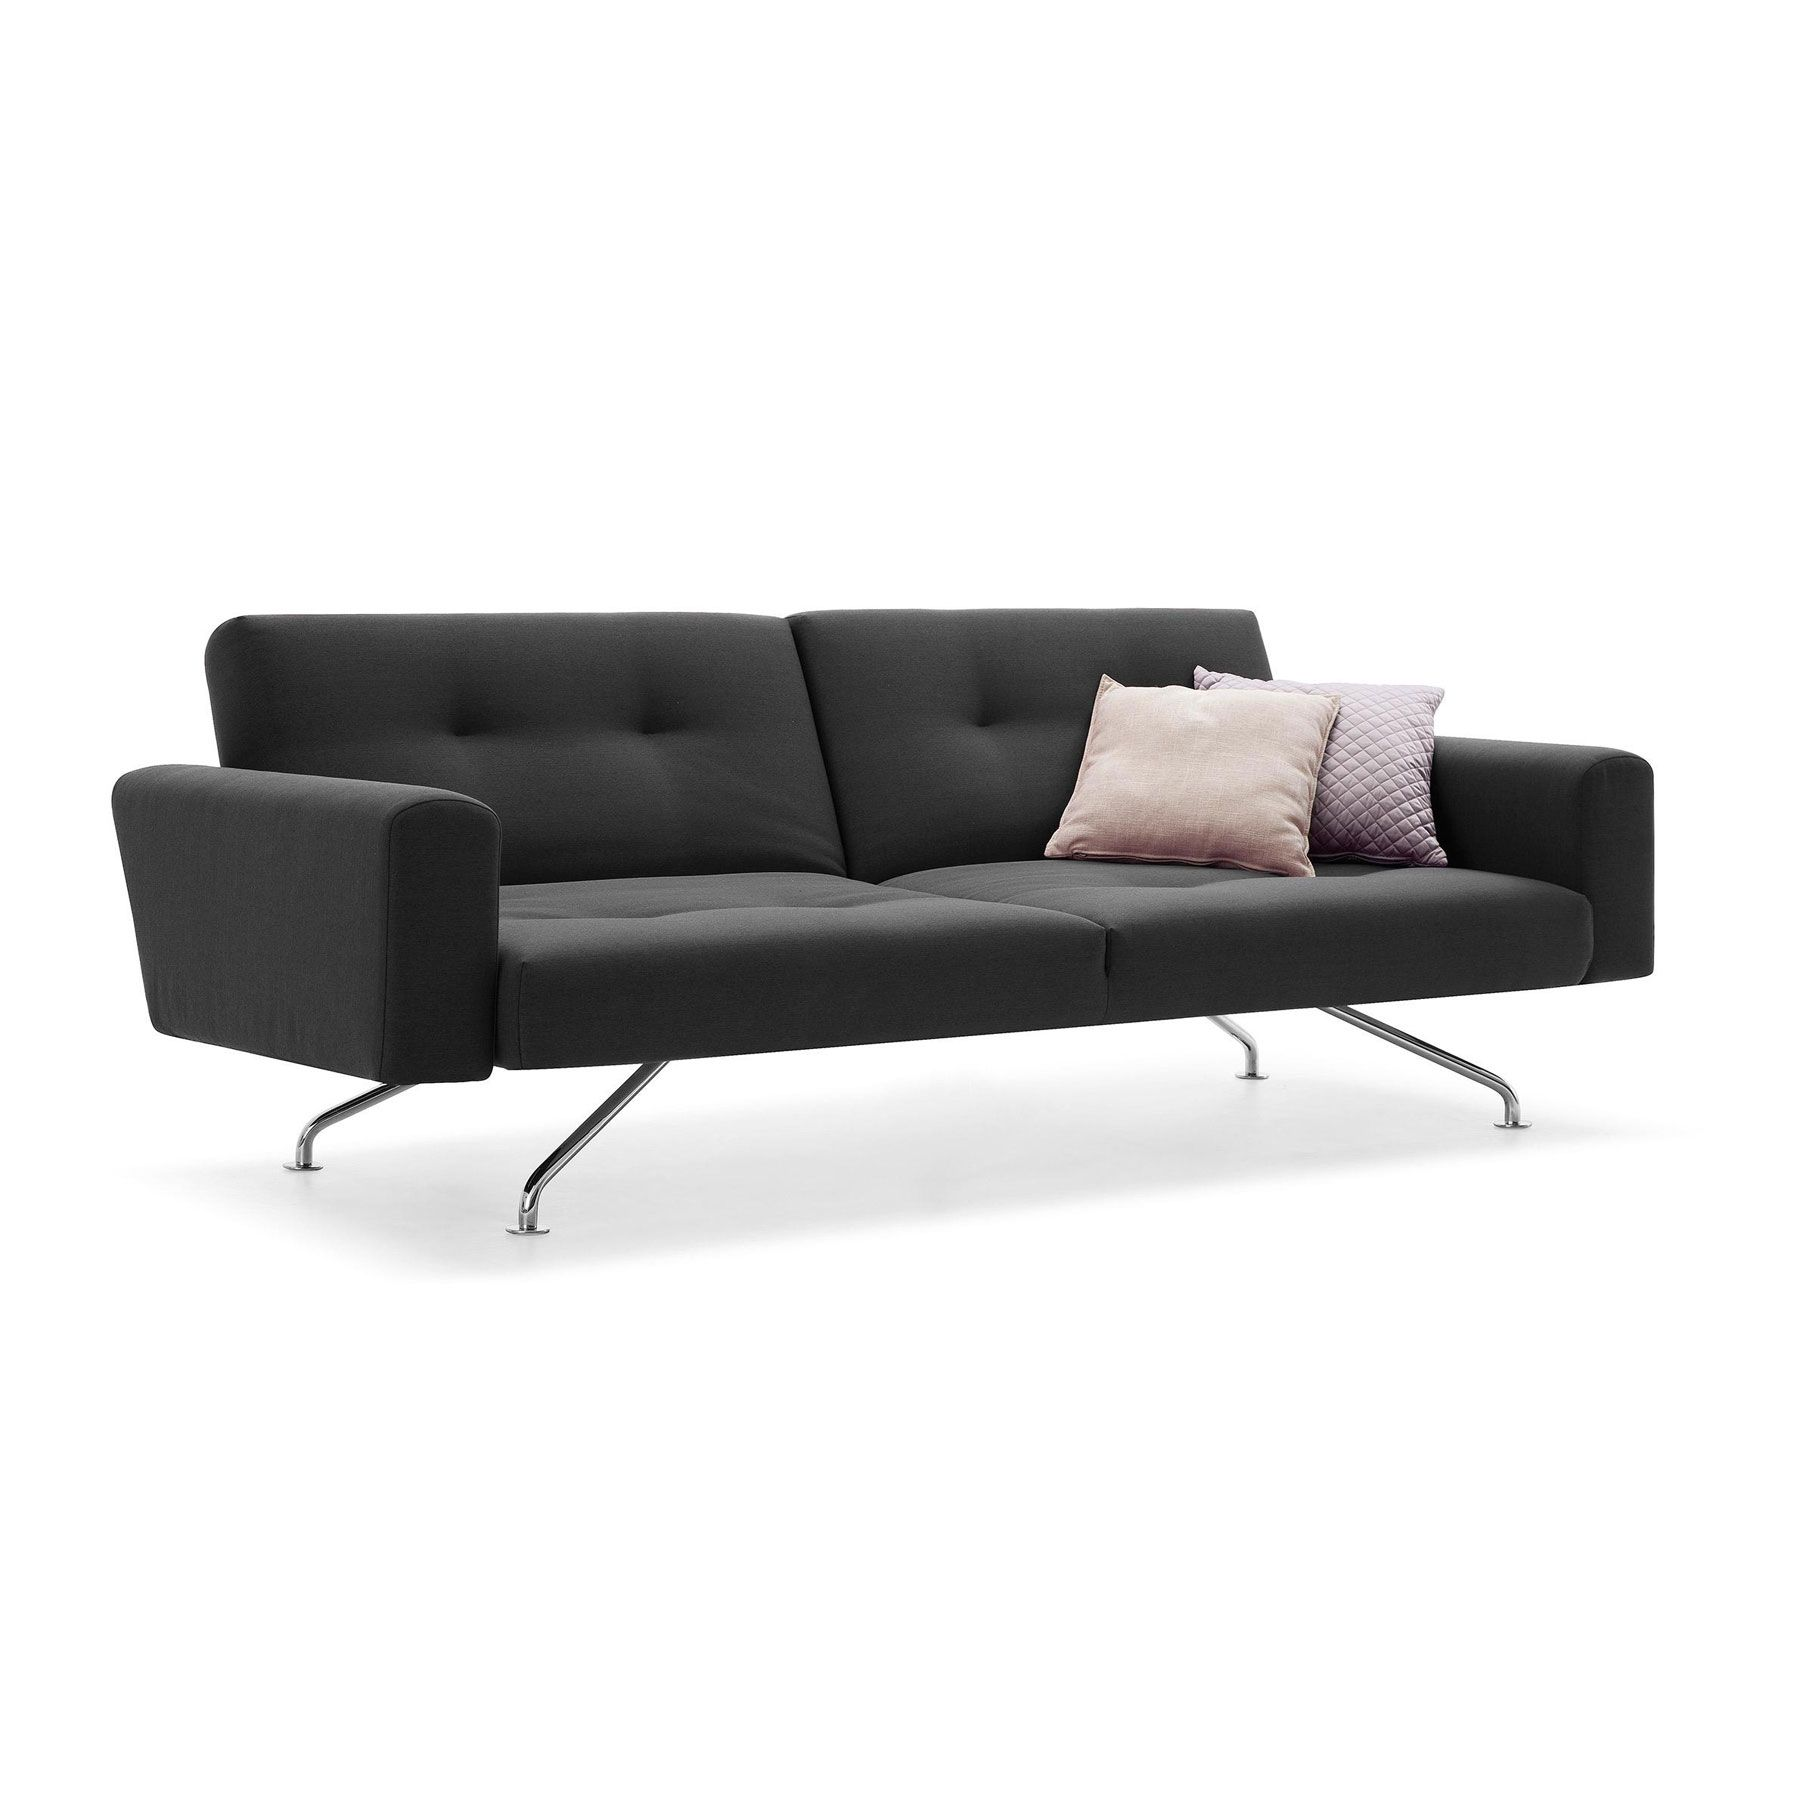 Furniture And Decor For The Modern Lifestyle Sofa Contemporary